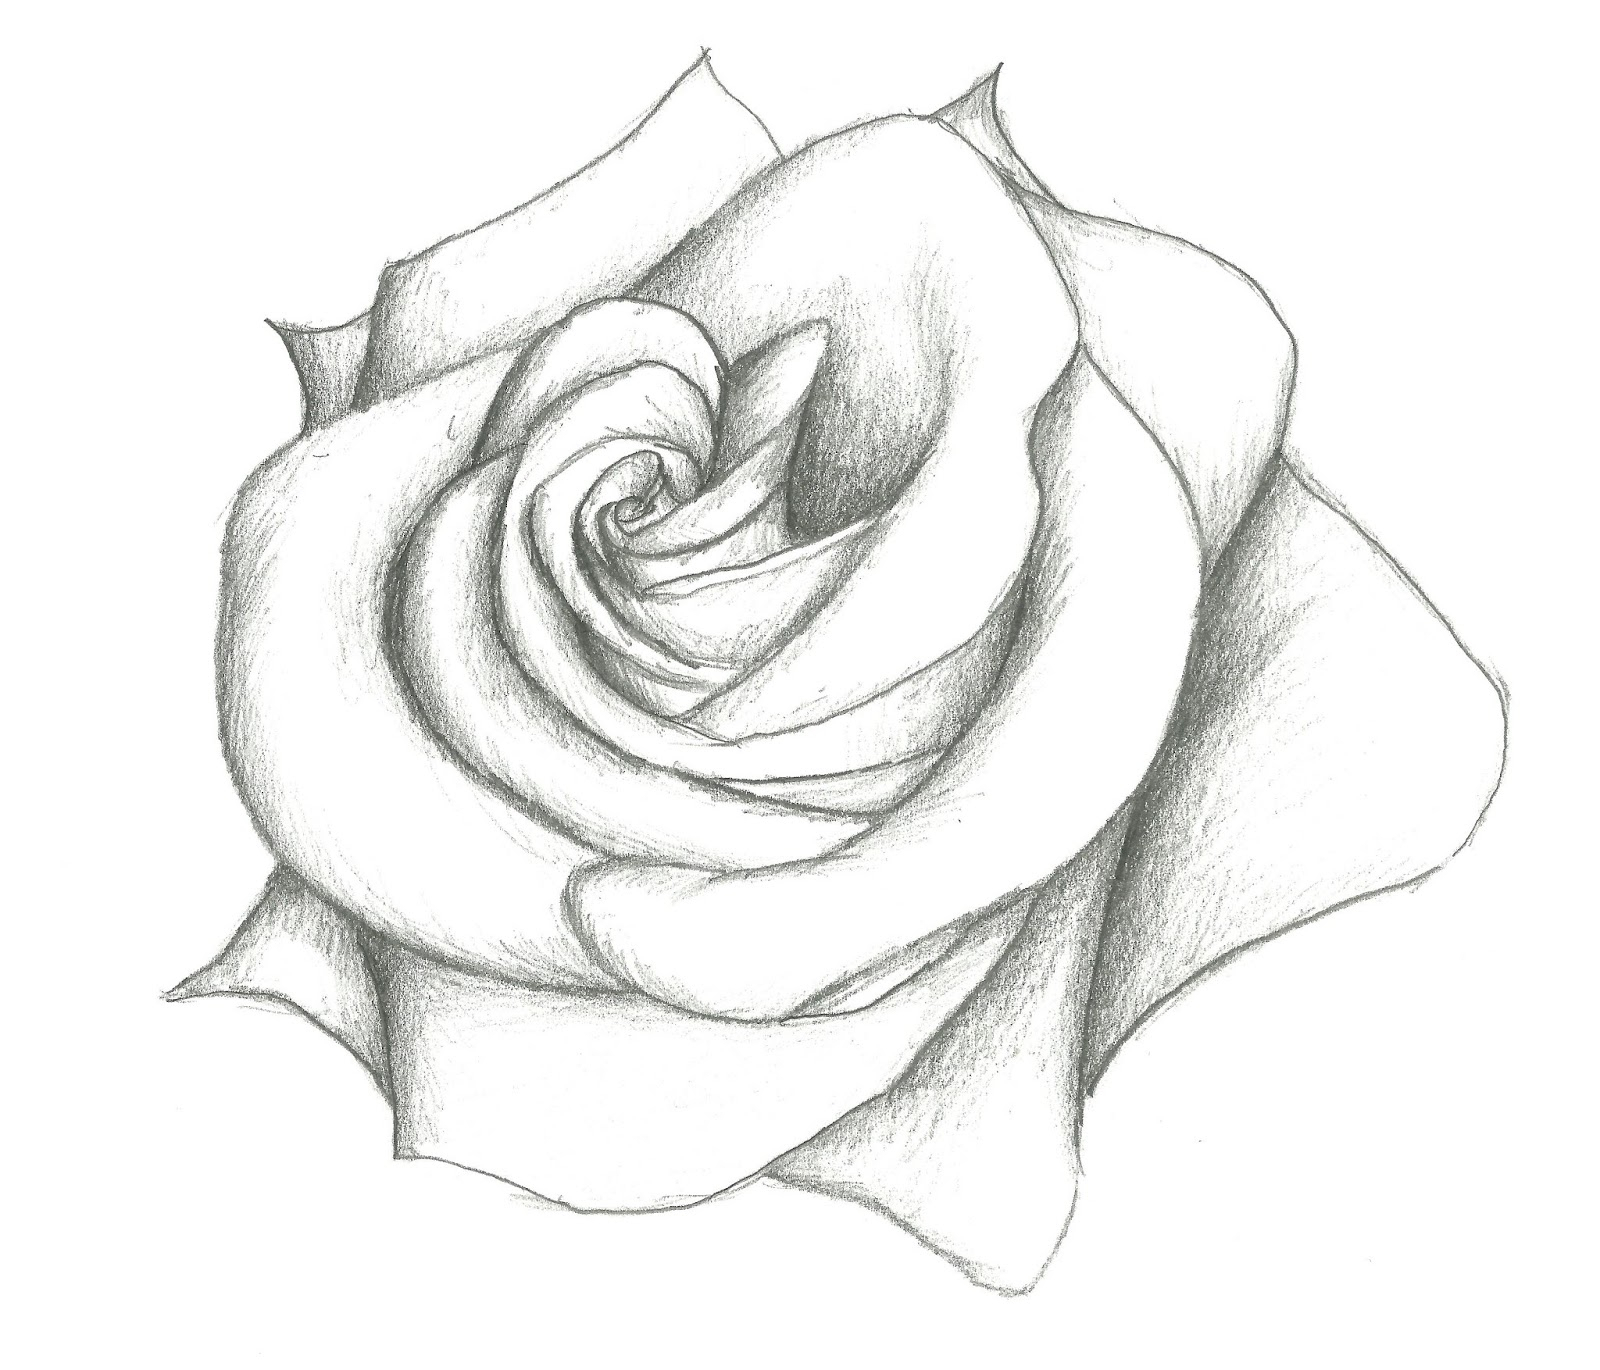 1600x1370 Rose Flower Drawings In Pencil Drawing A Rose Flower With Simple